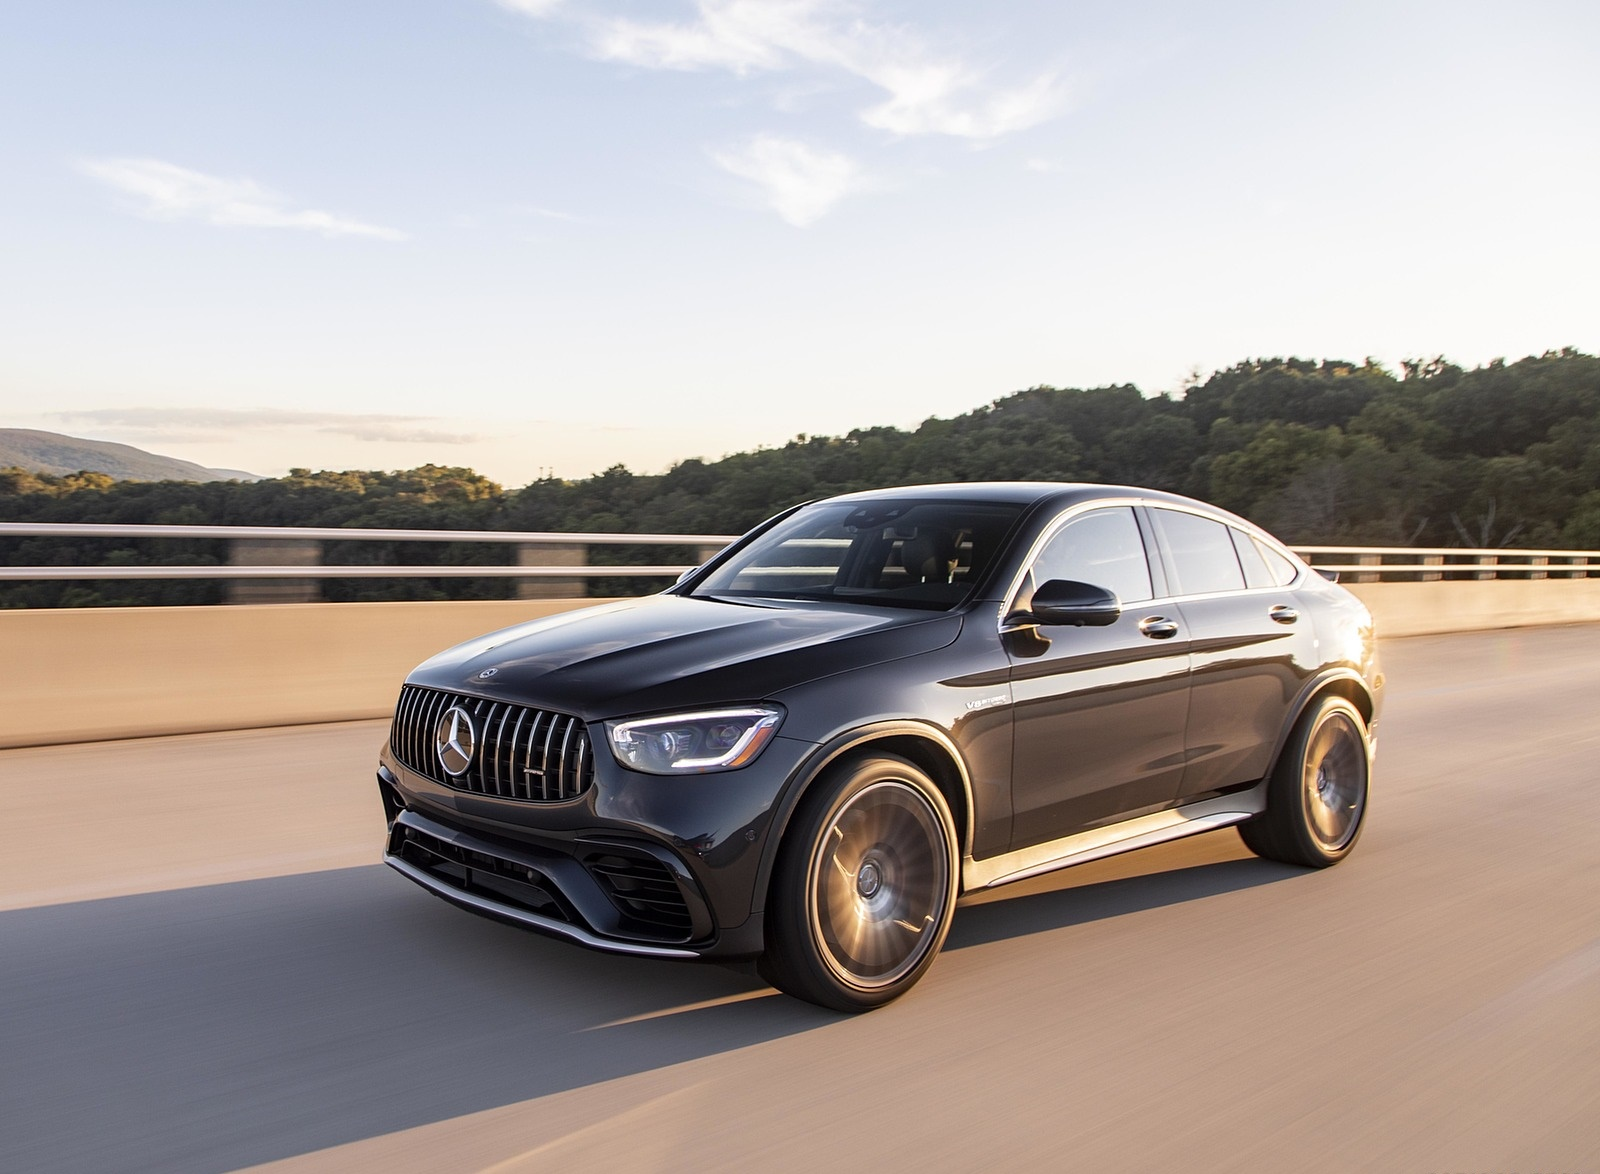 2020 Mercedes-AMG GLC 63 S Coupe (US-Spec) Front Three-Quarter Wallpapers (4)